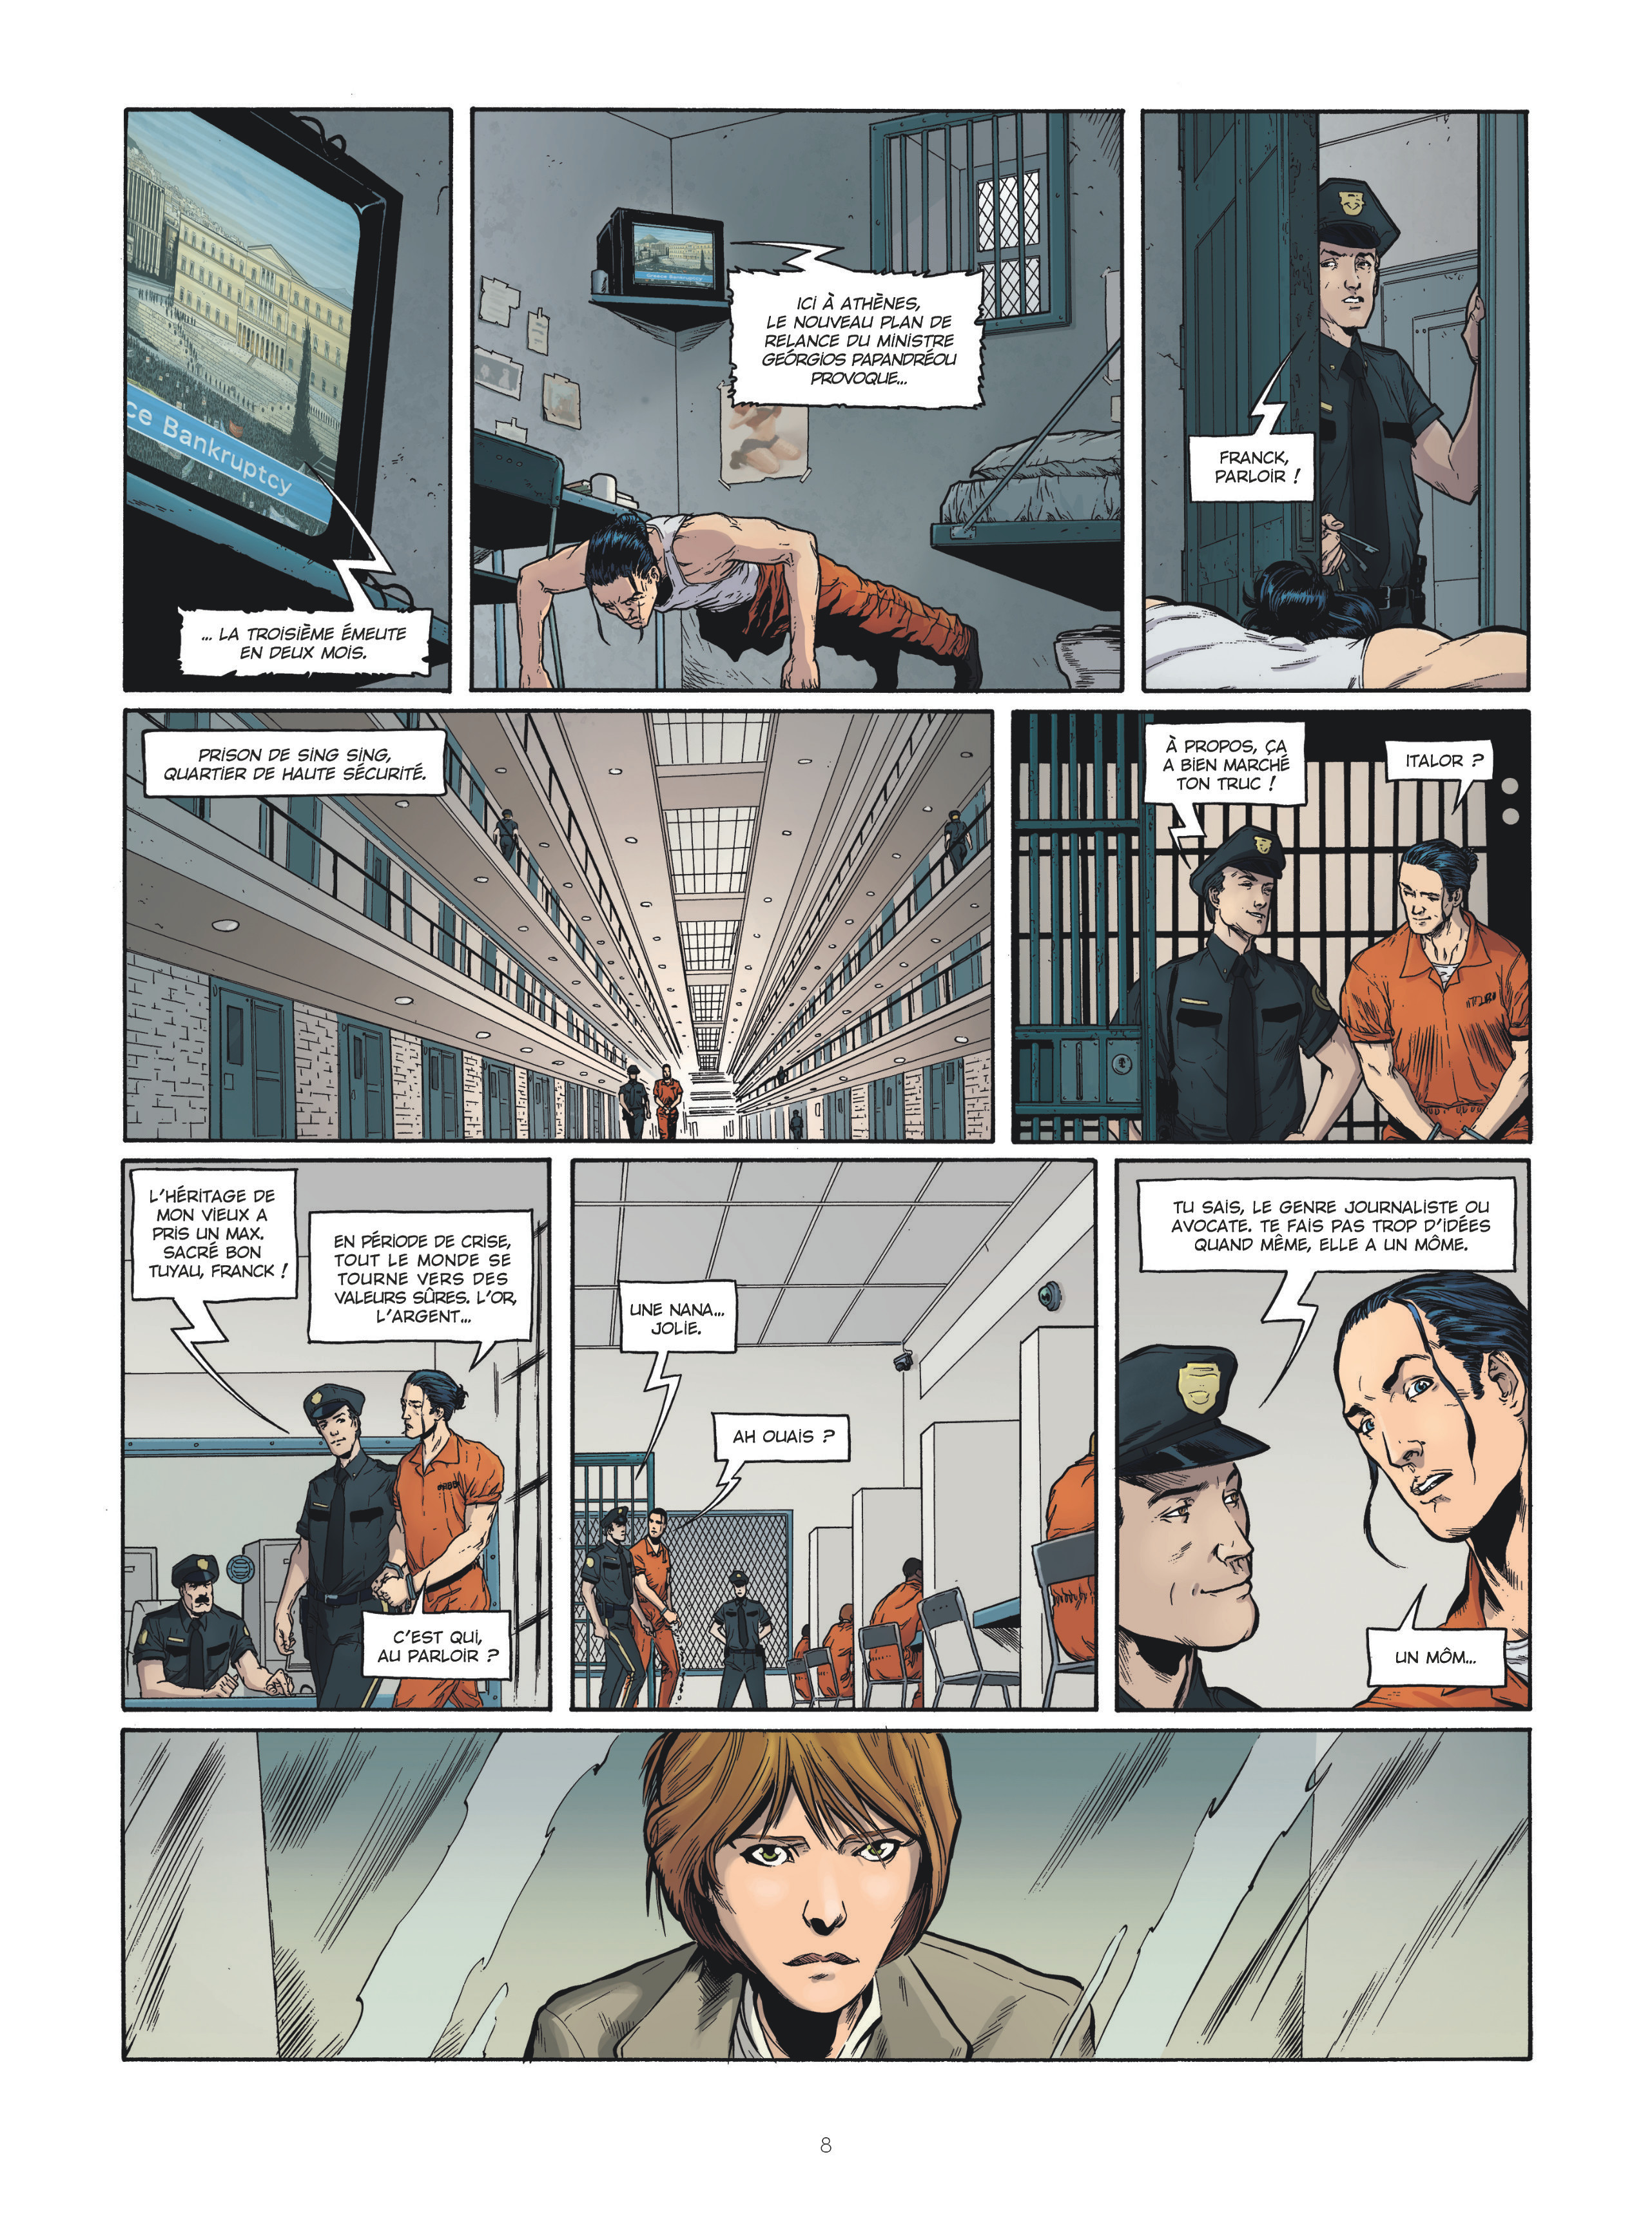 Hedge Fund #3_Page 8